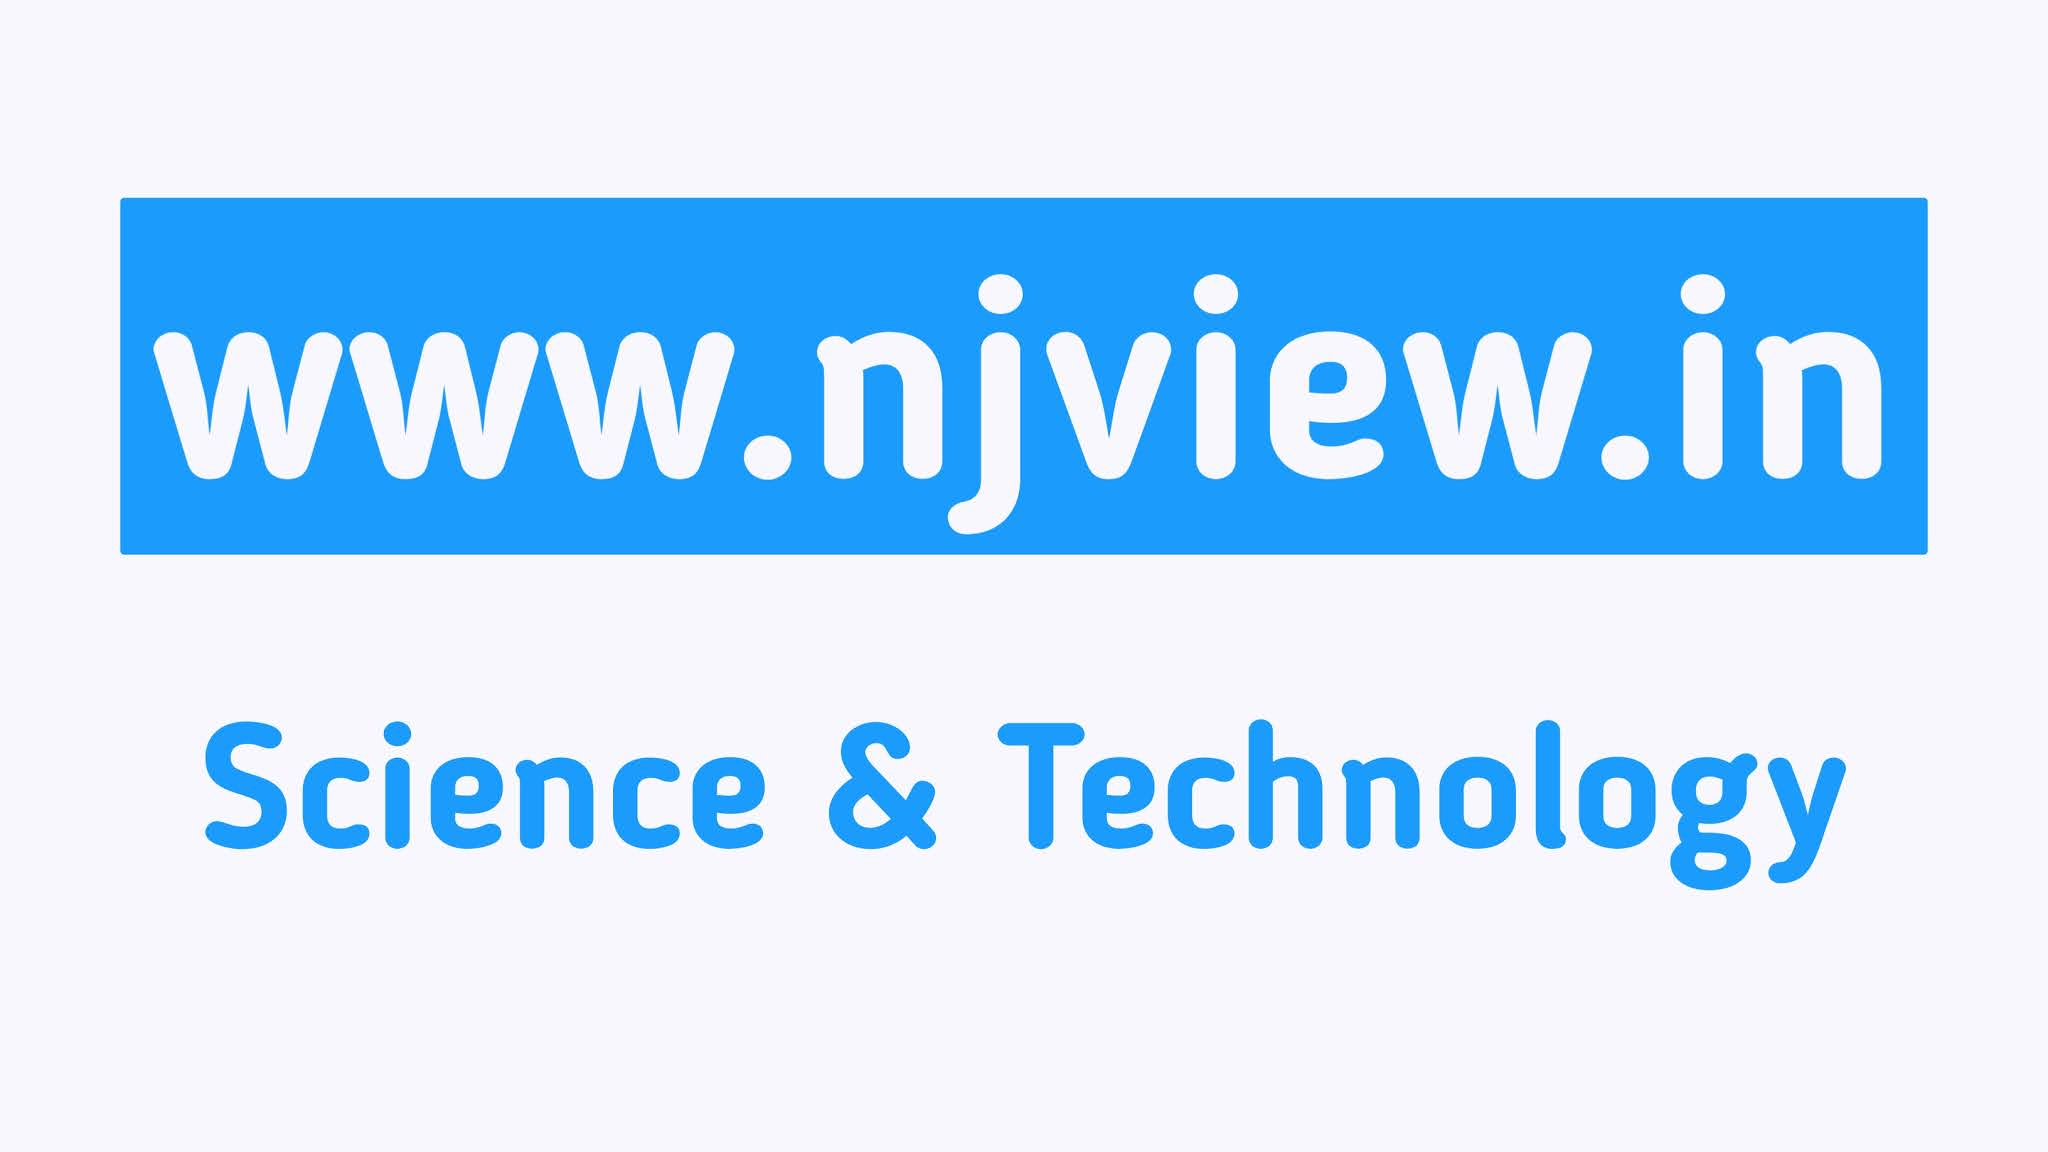 njview.in - Science & Technology